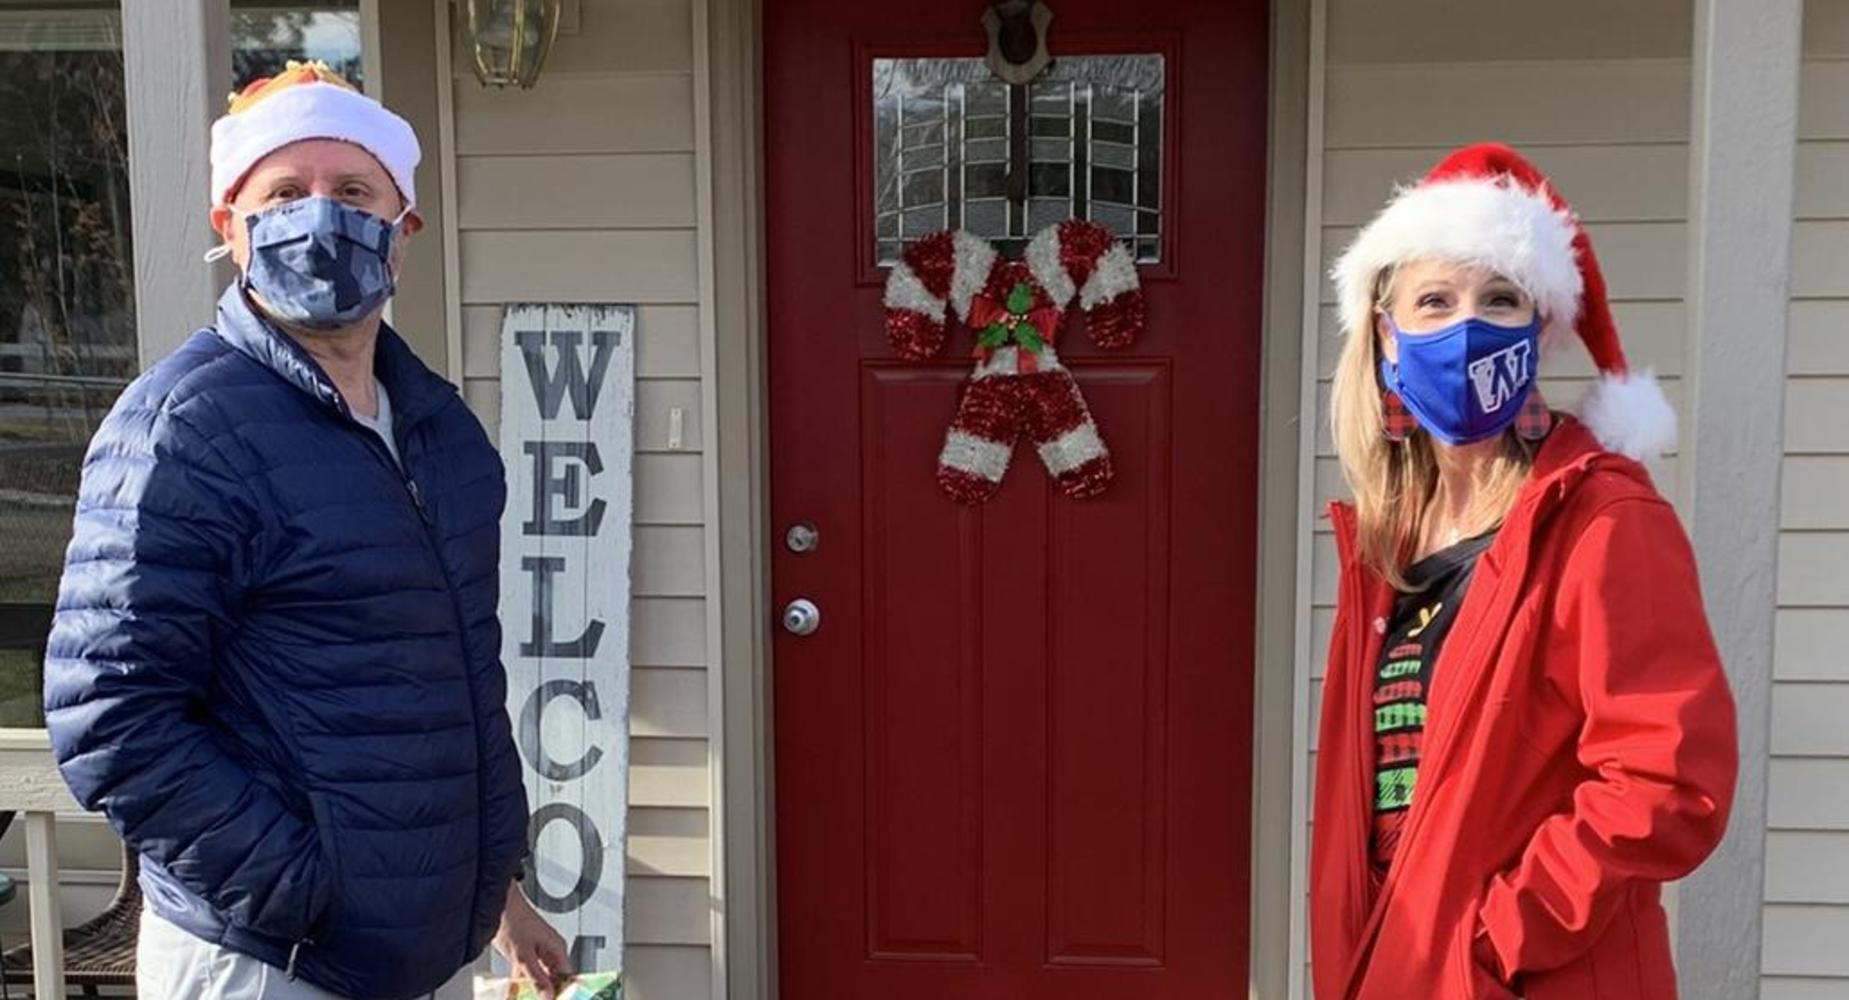 Kinder Teachers make house visits at Christmas time